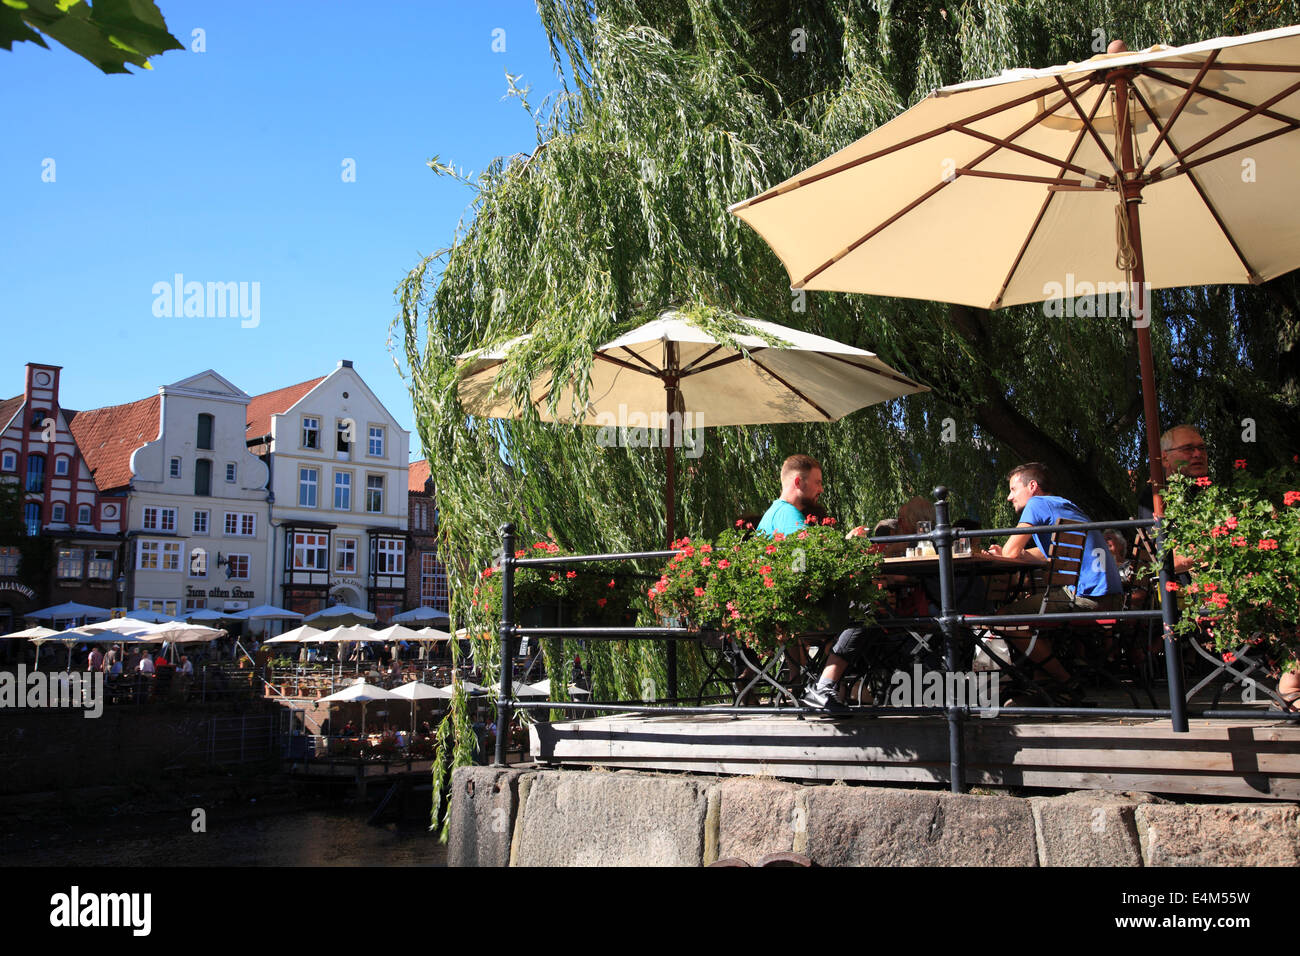 Beer garden at the old harbor, Lueneburg, Lower Saxony, Germany, Europe - Stock Image